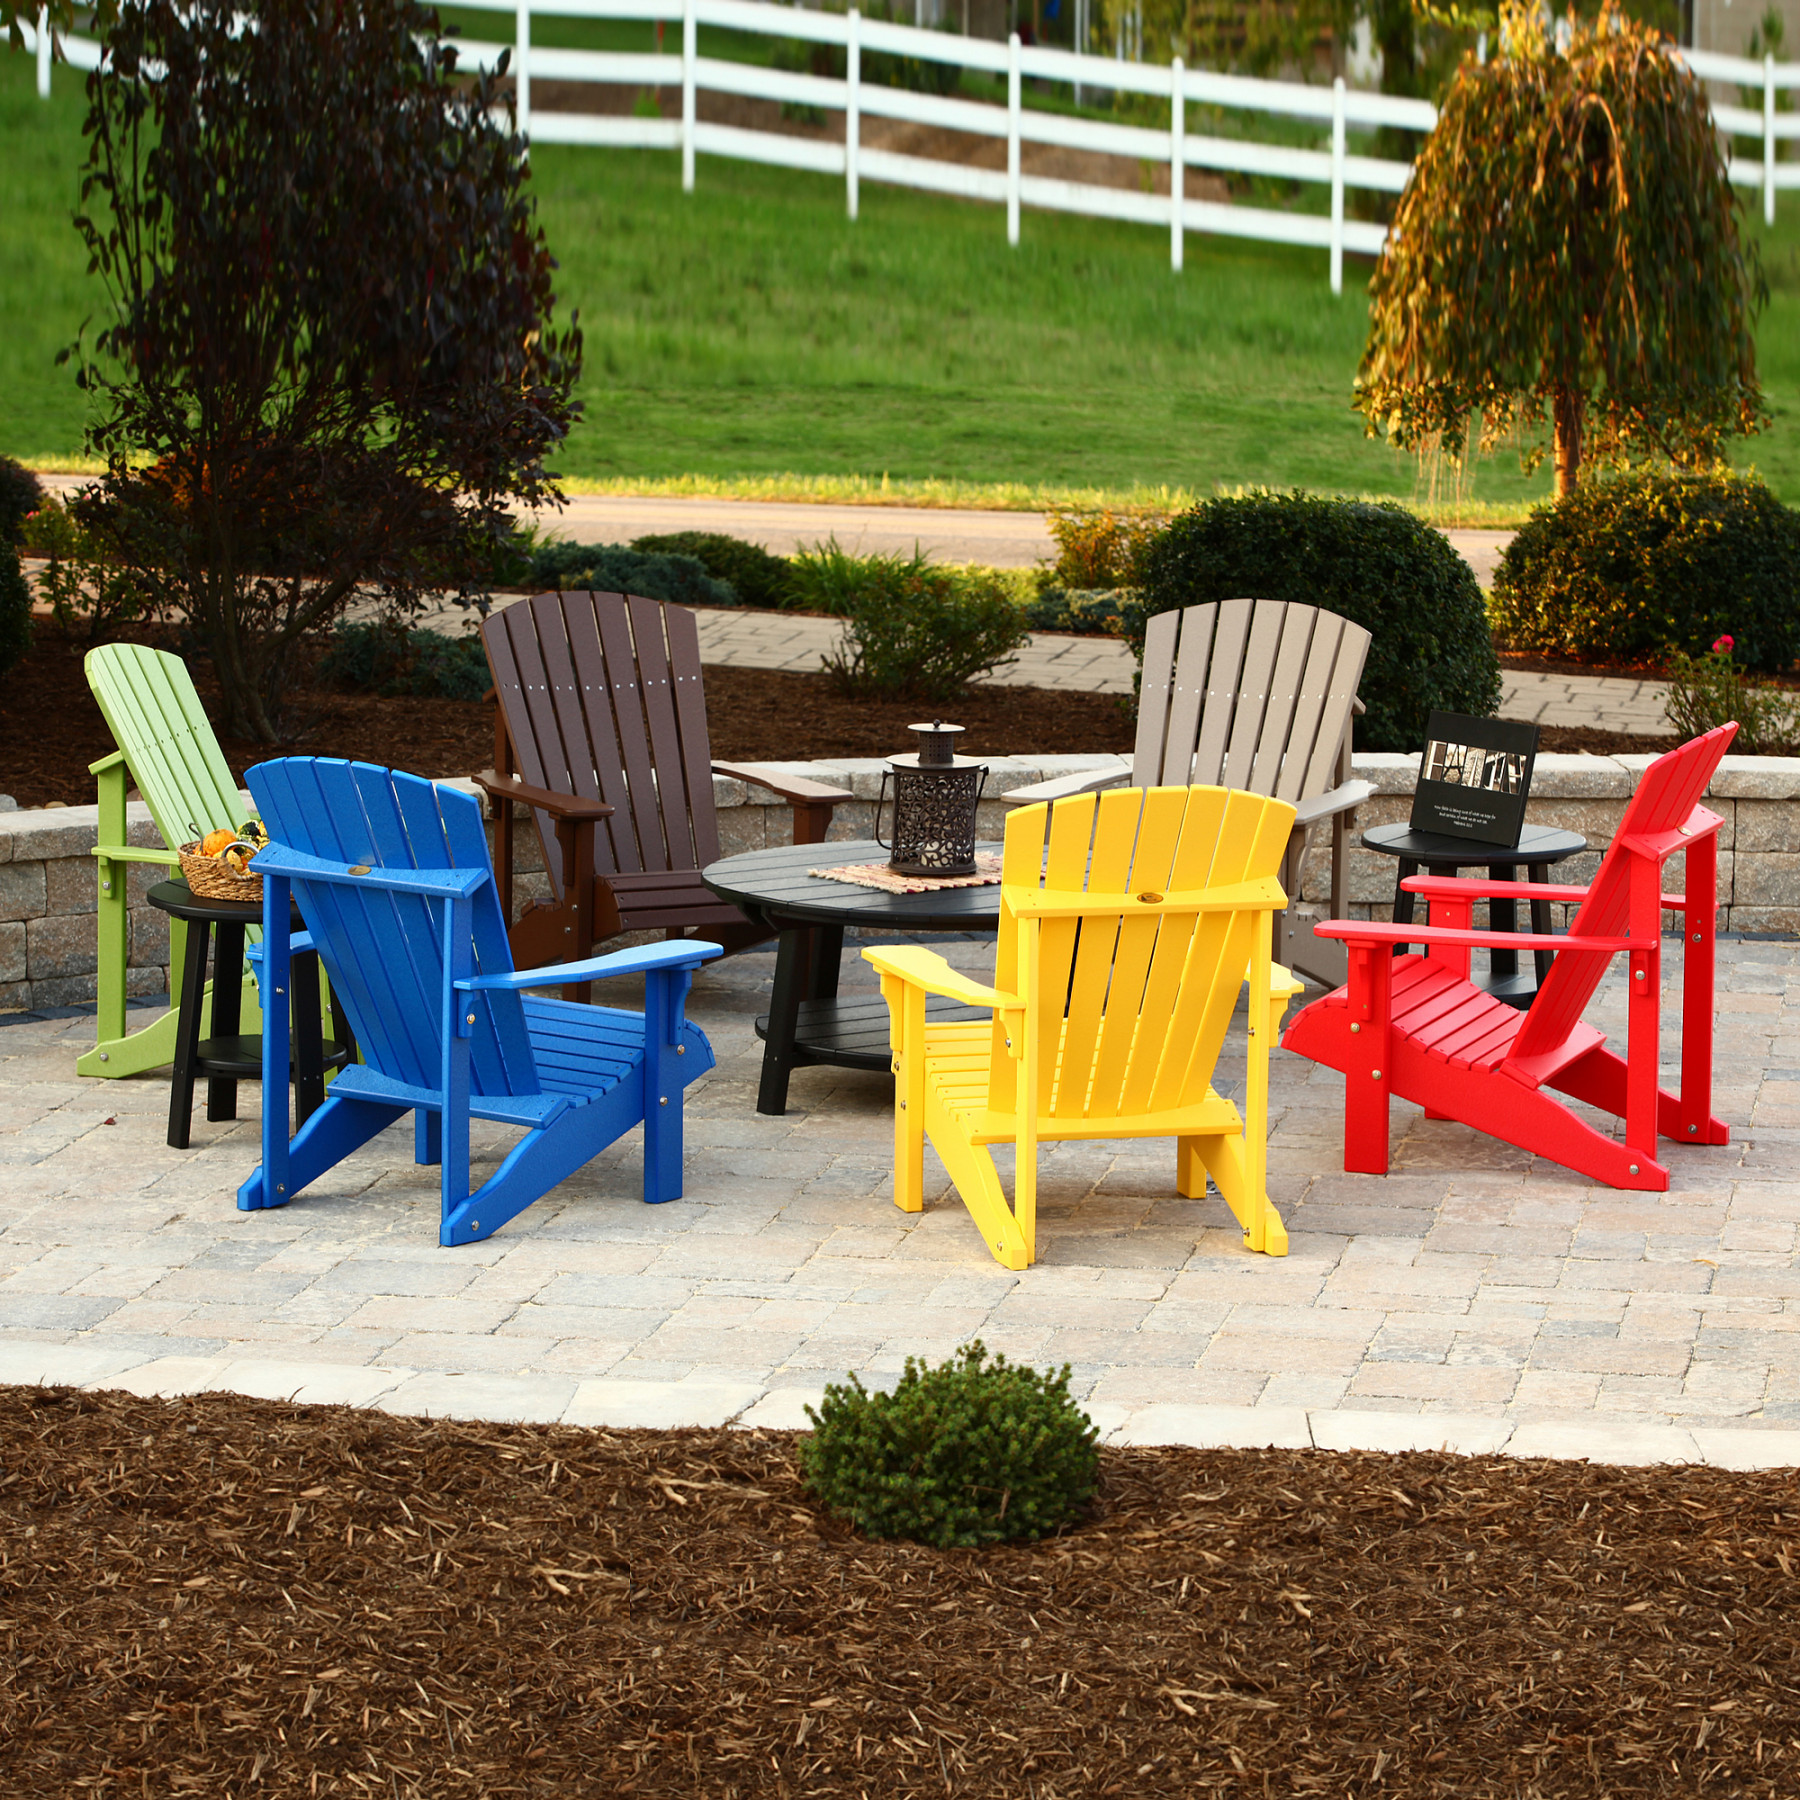 Colorful adirondack chairs - Luxcraft Crestville Deluxe Adirondack Chair In Solid Tropical Colors